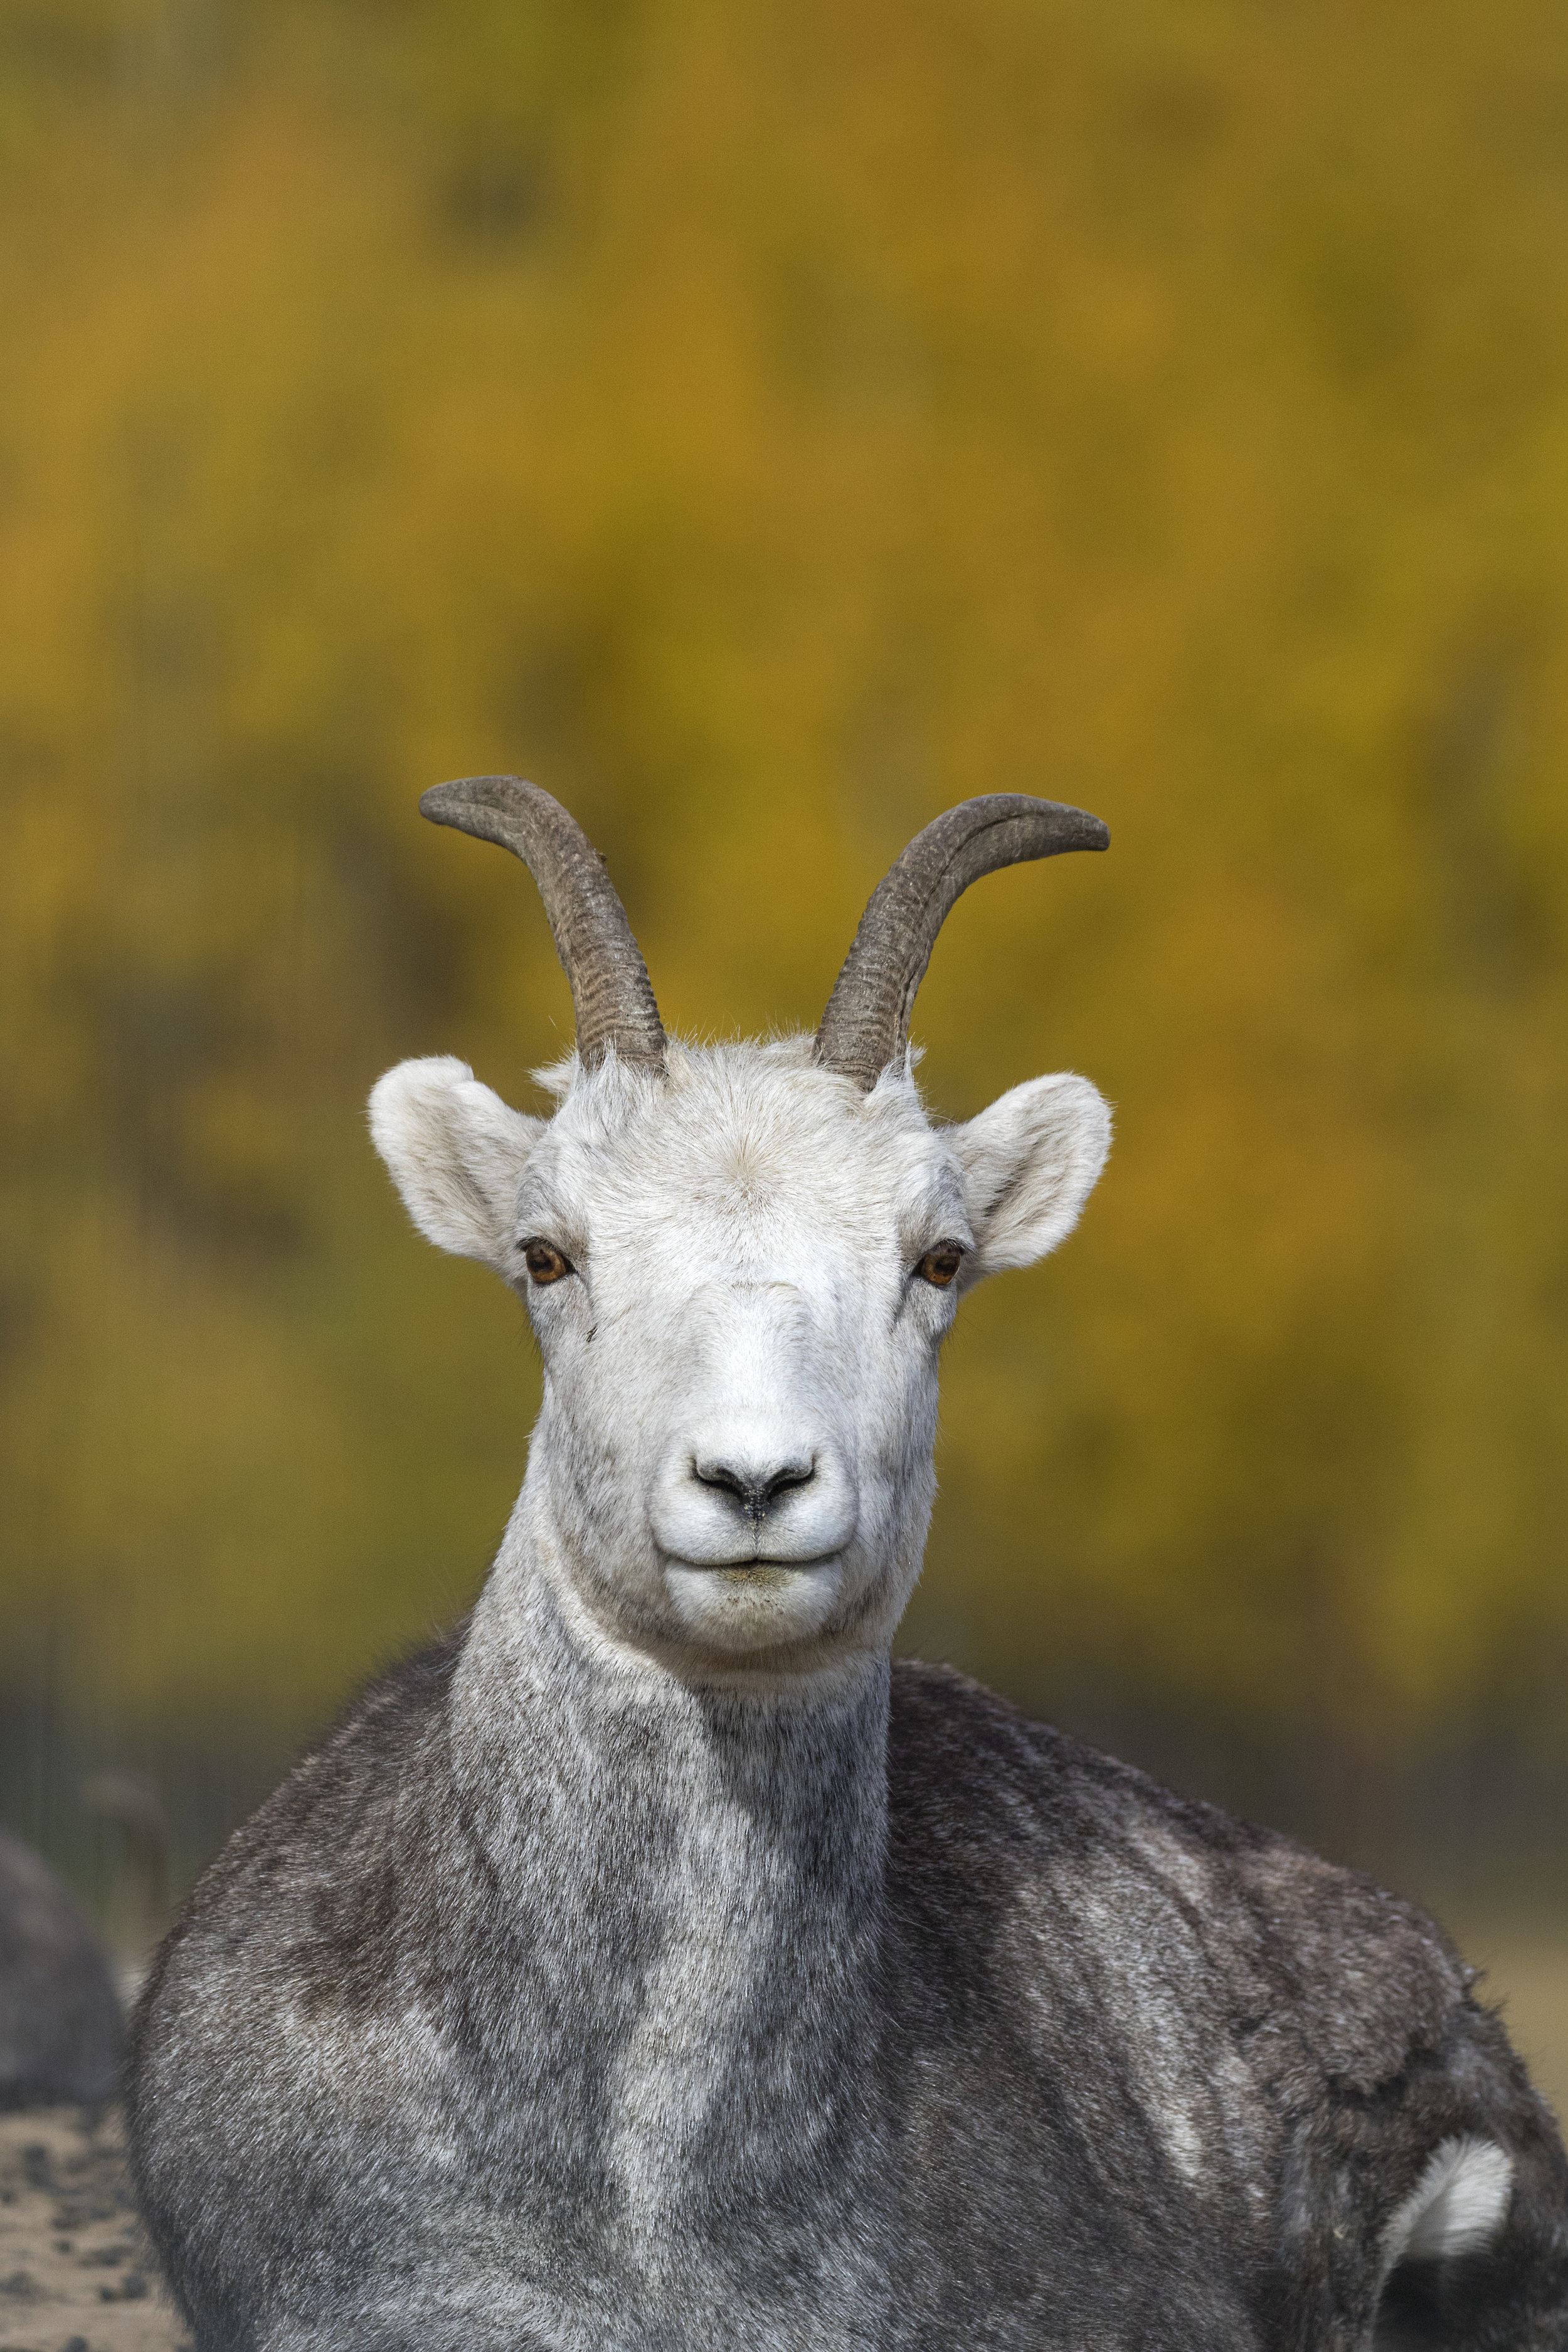 Thin Horn Sheep - Across the Blue Planet